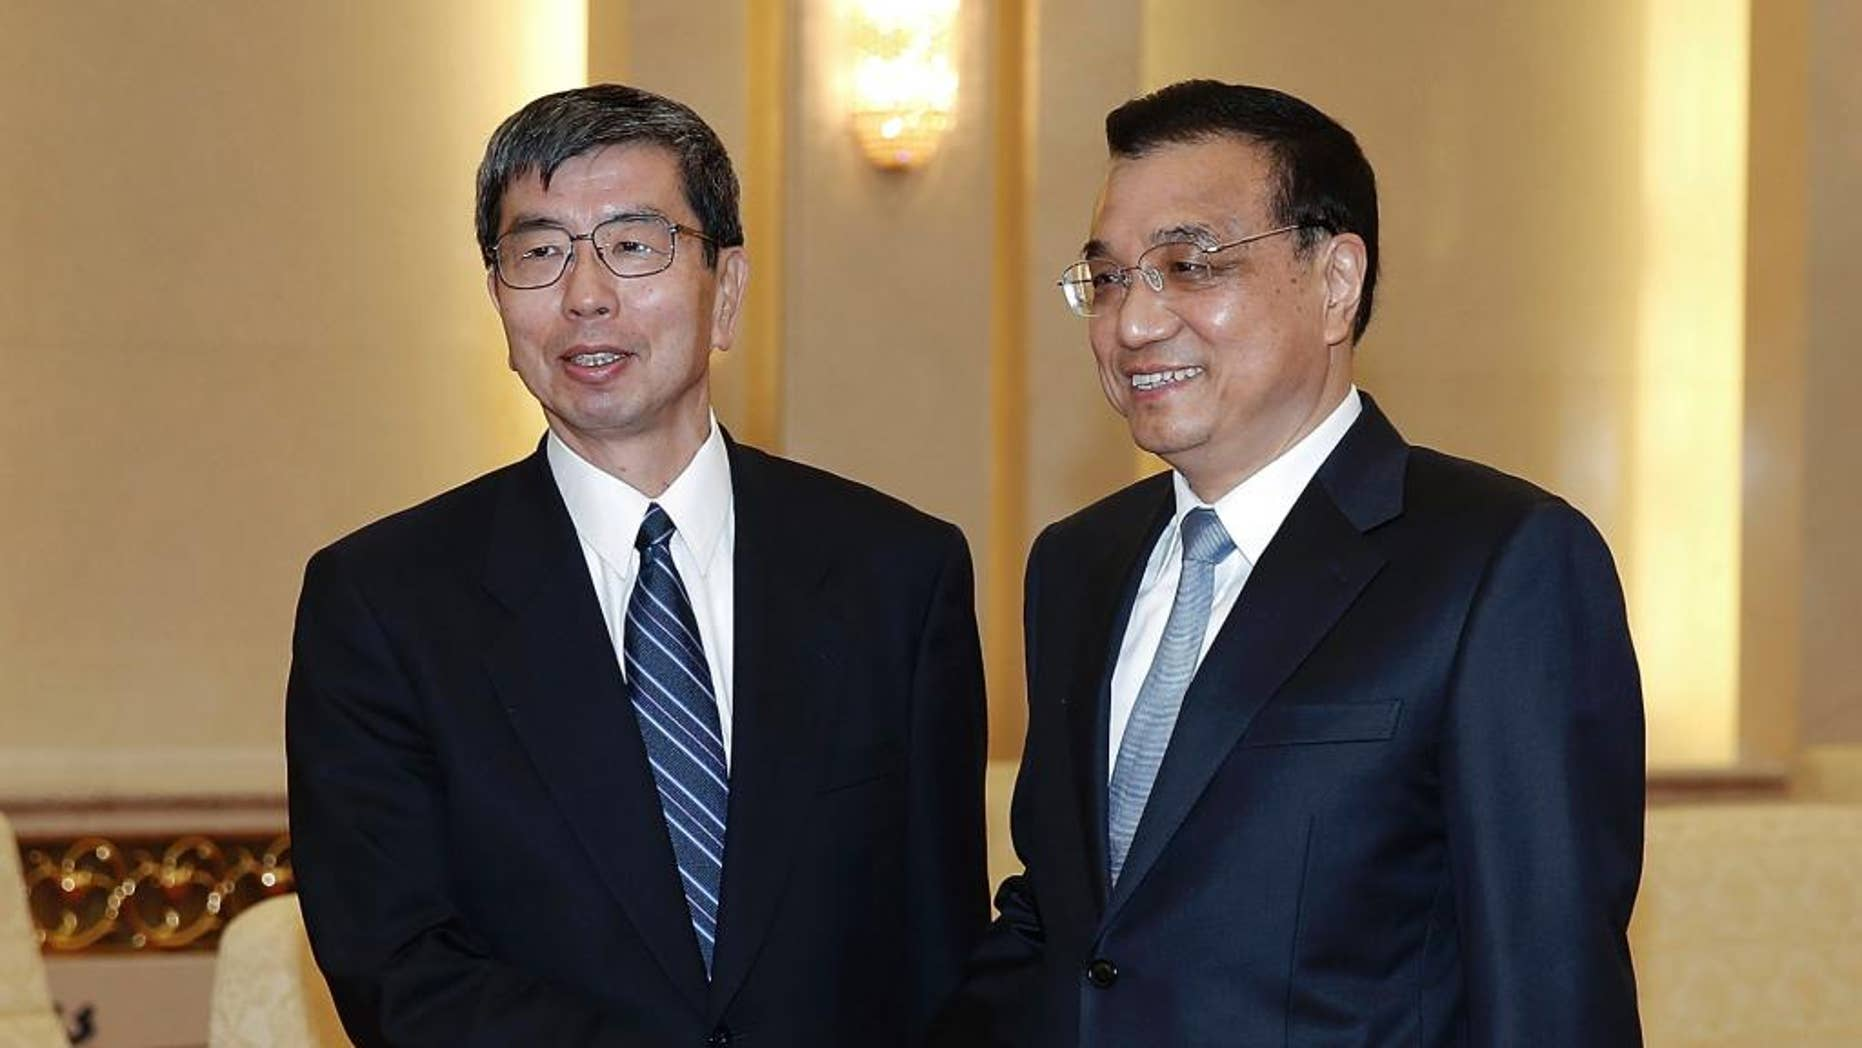 FILE - In this March 23, 2015 file photo, Asian Development Bank President Takehiko Nakao, left, poses with Chinese Premier Li Keqiang for a photo at the Great Hall of the People in Beijing. The president of the Asian Development Bank says a proposed Chinese-led regional bank is a potential partner instead of a rival and the ADB is talking with Beijing to share its experience. (AP Photo/Lintao Zhang, Pool, File)